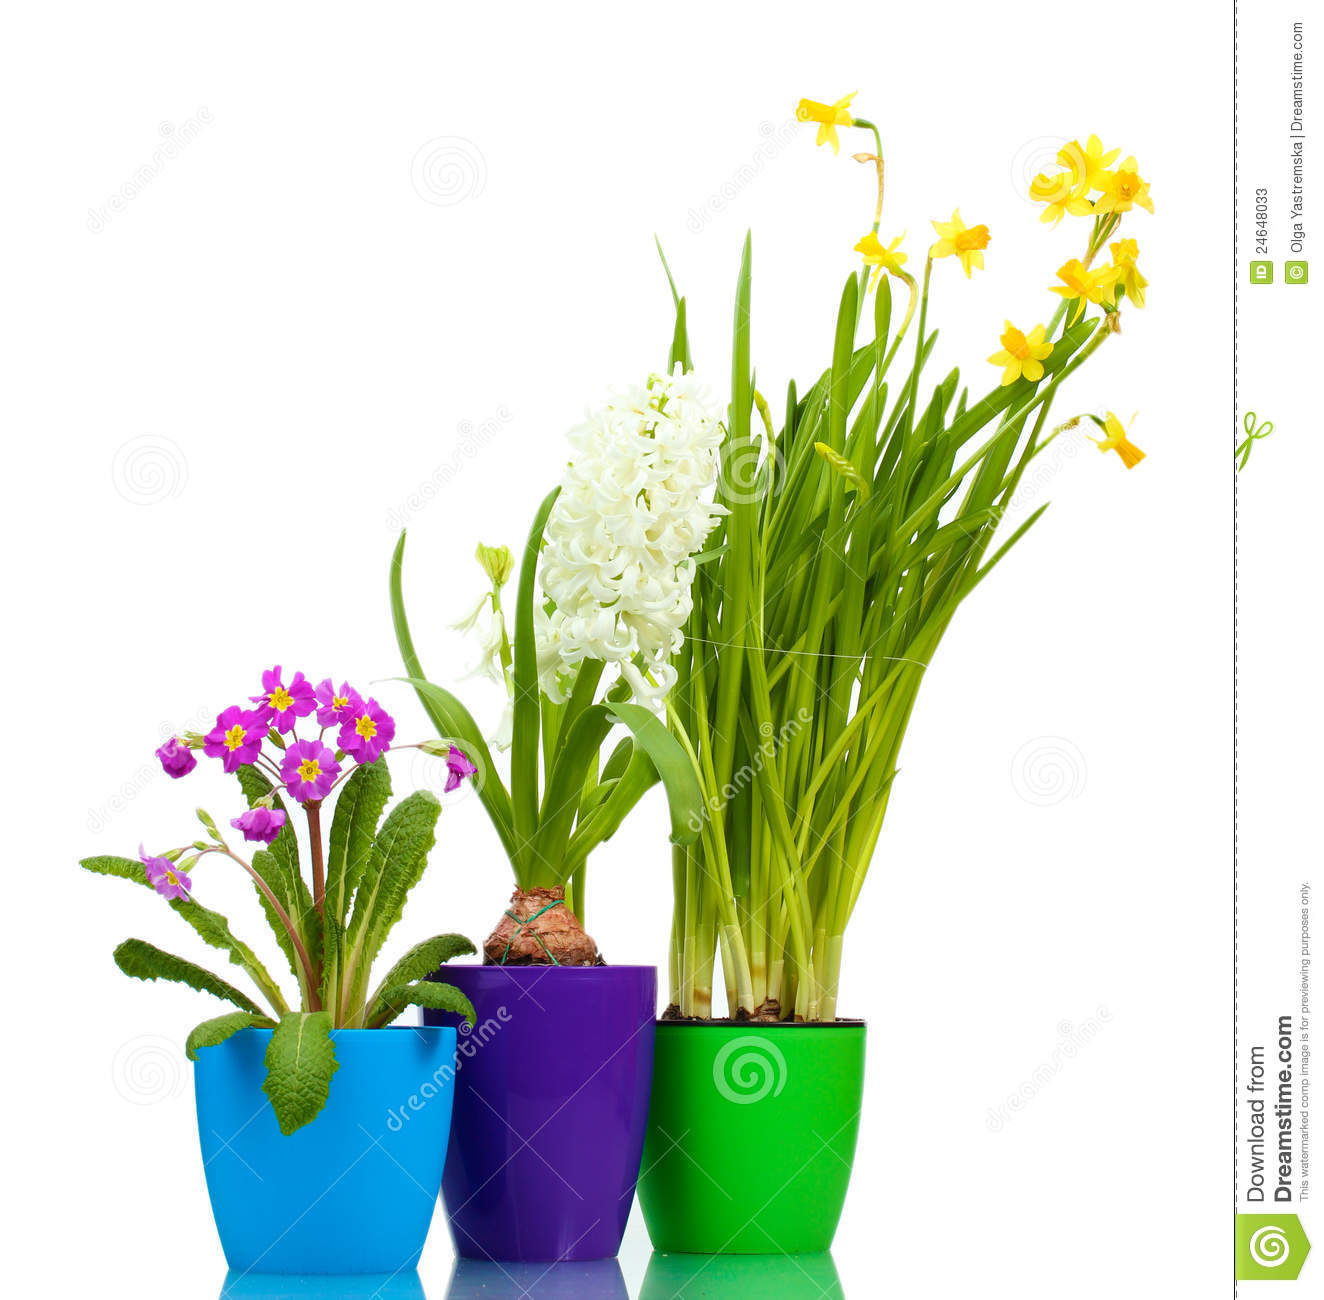 Pictures of Beautiful Flower Pots http://www.dreamstime.com/stock-photos-beautiful-spring-flowers-pots-image24648033